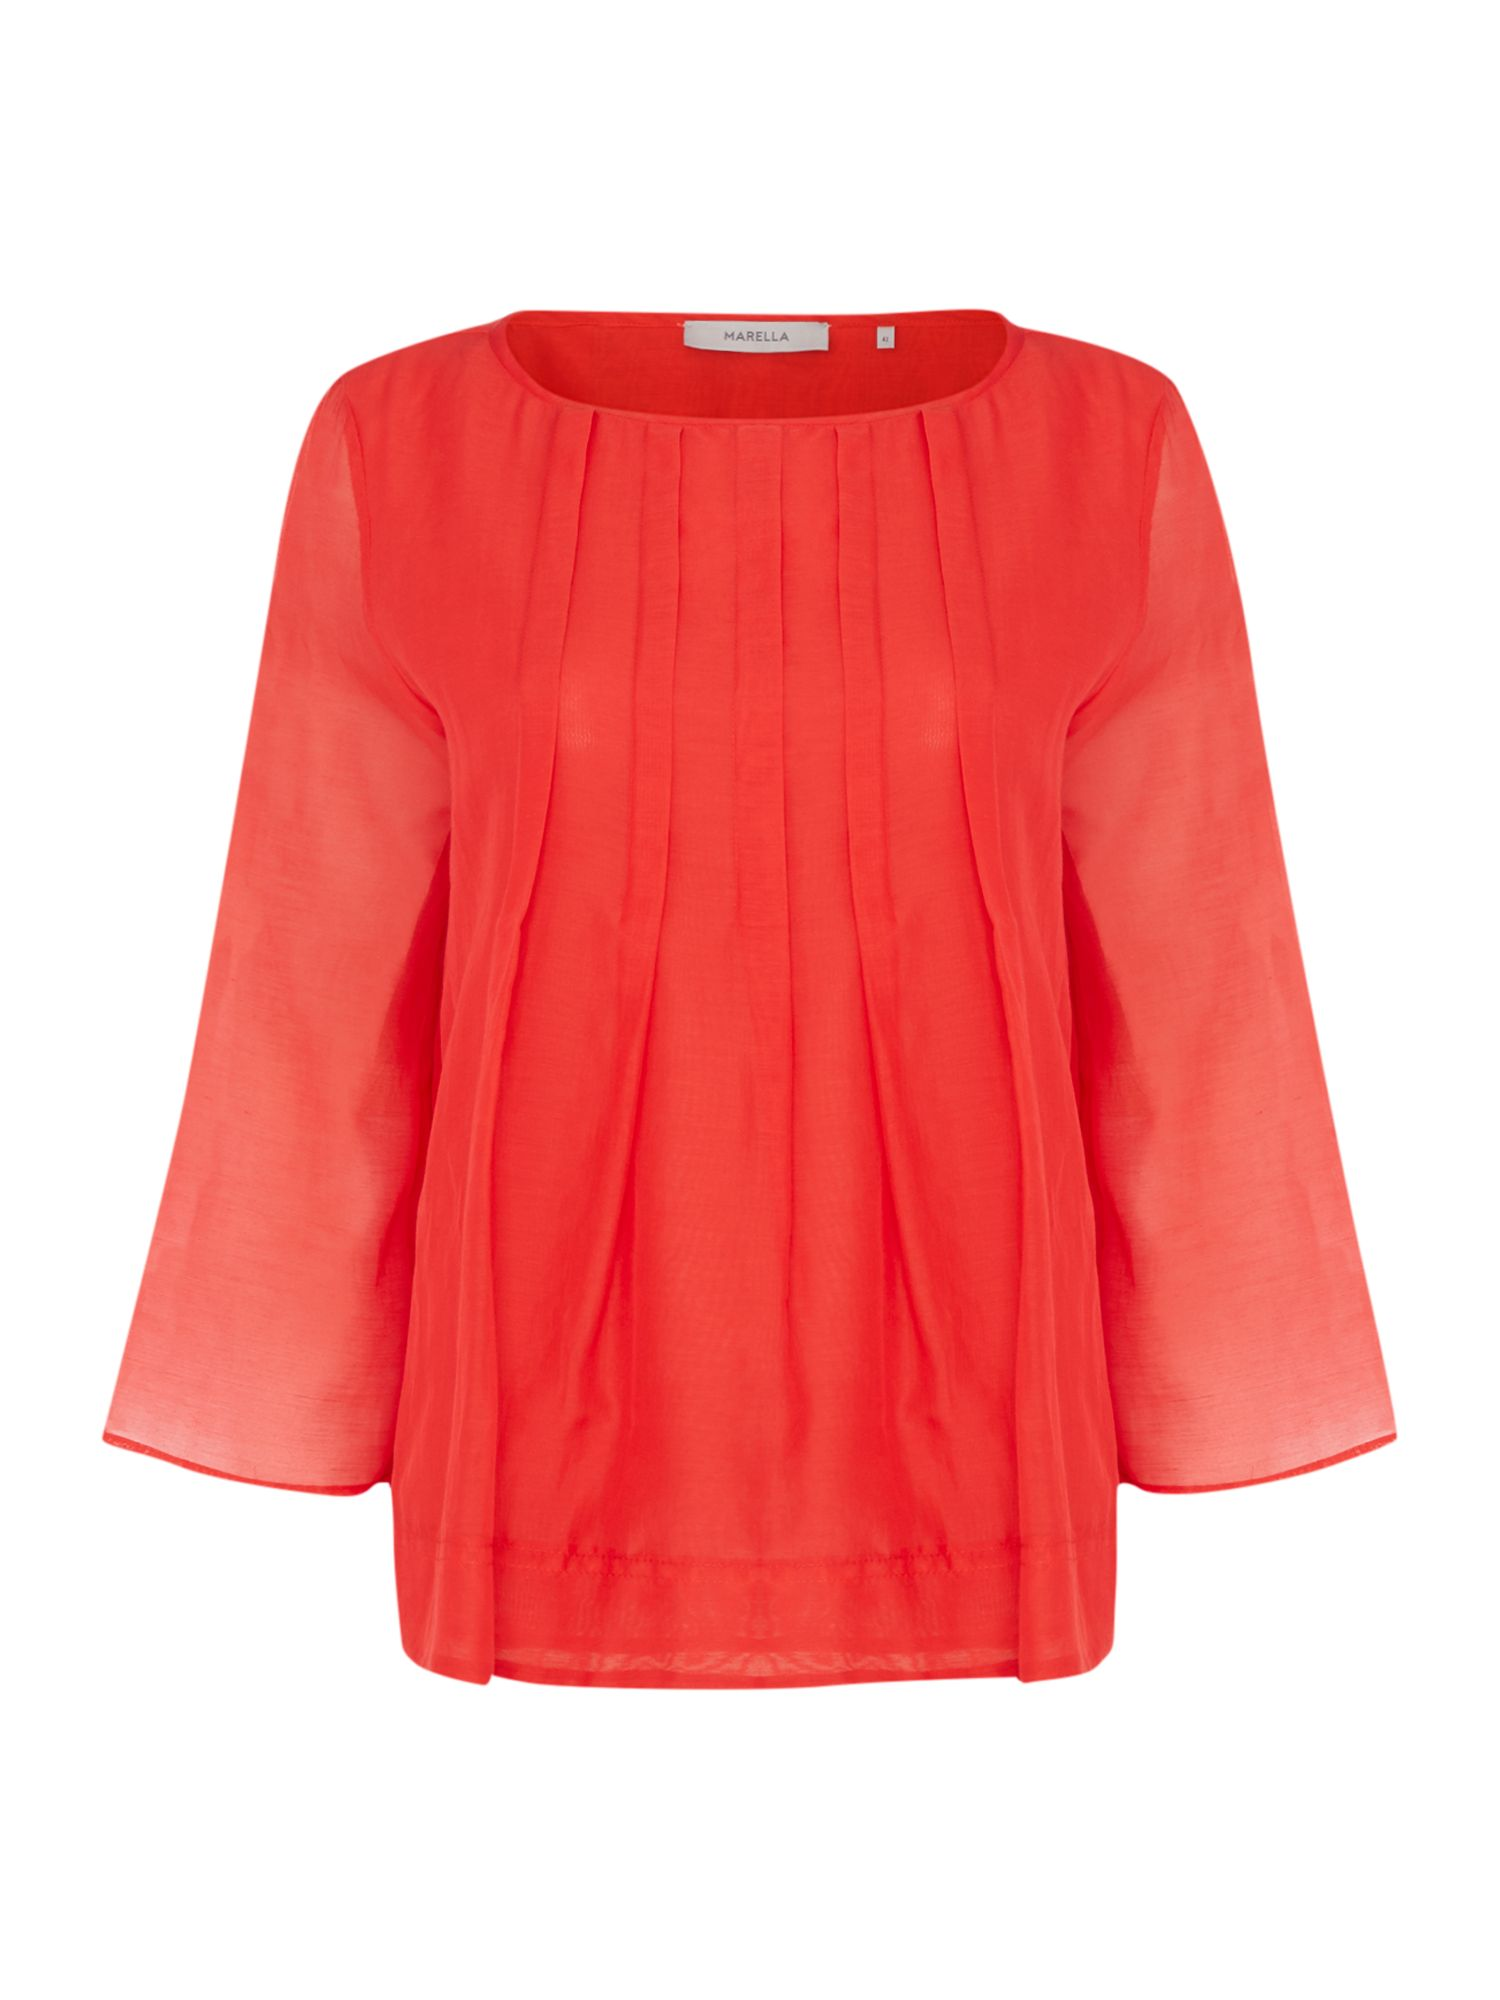 Marella LIQUORE 3/4 sleeve pleated front blouse, Red